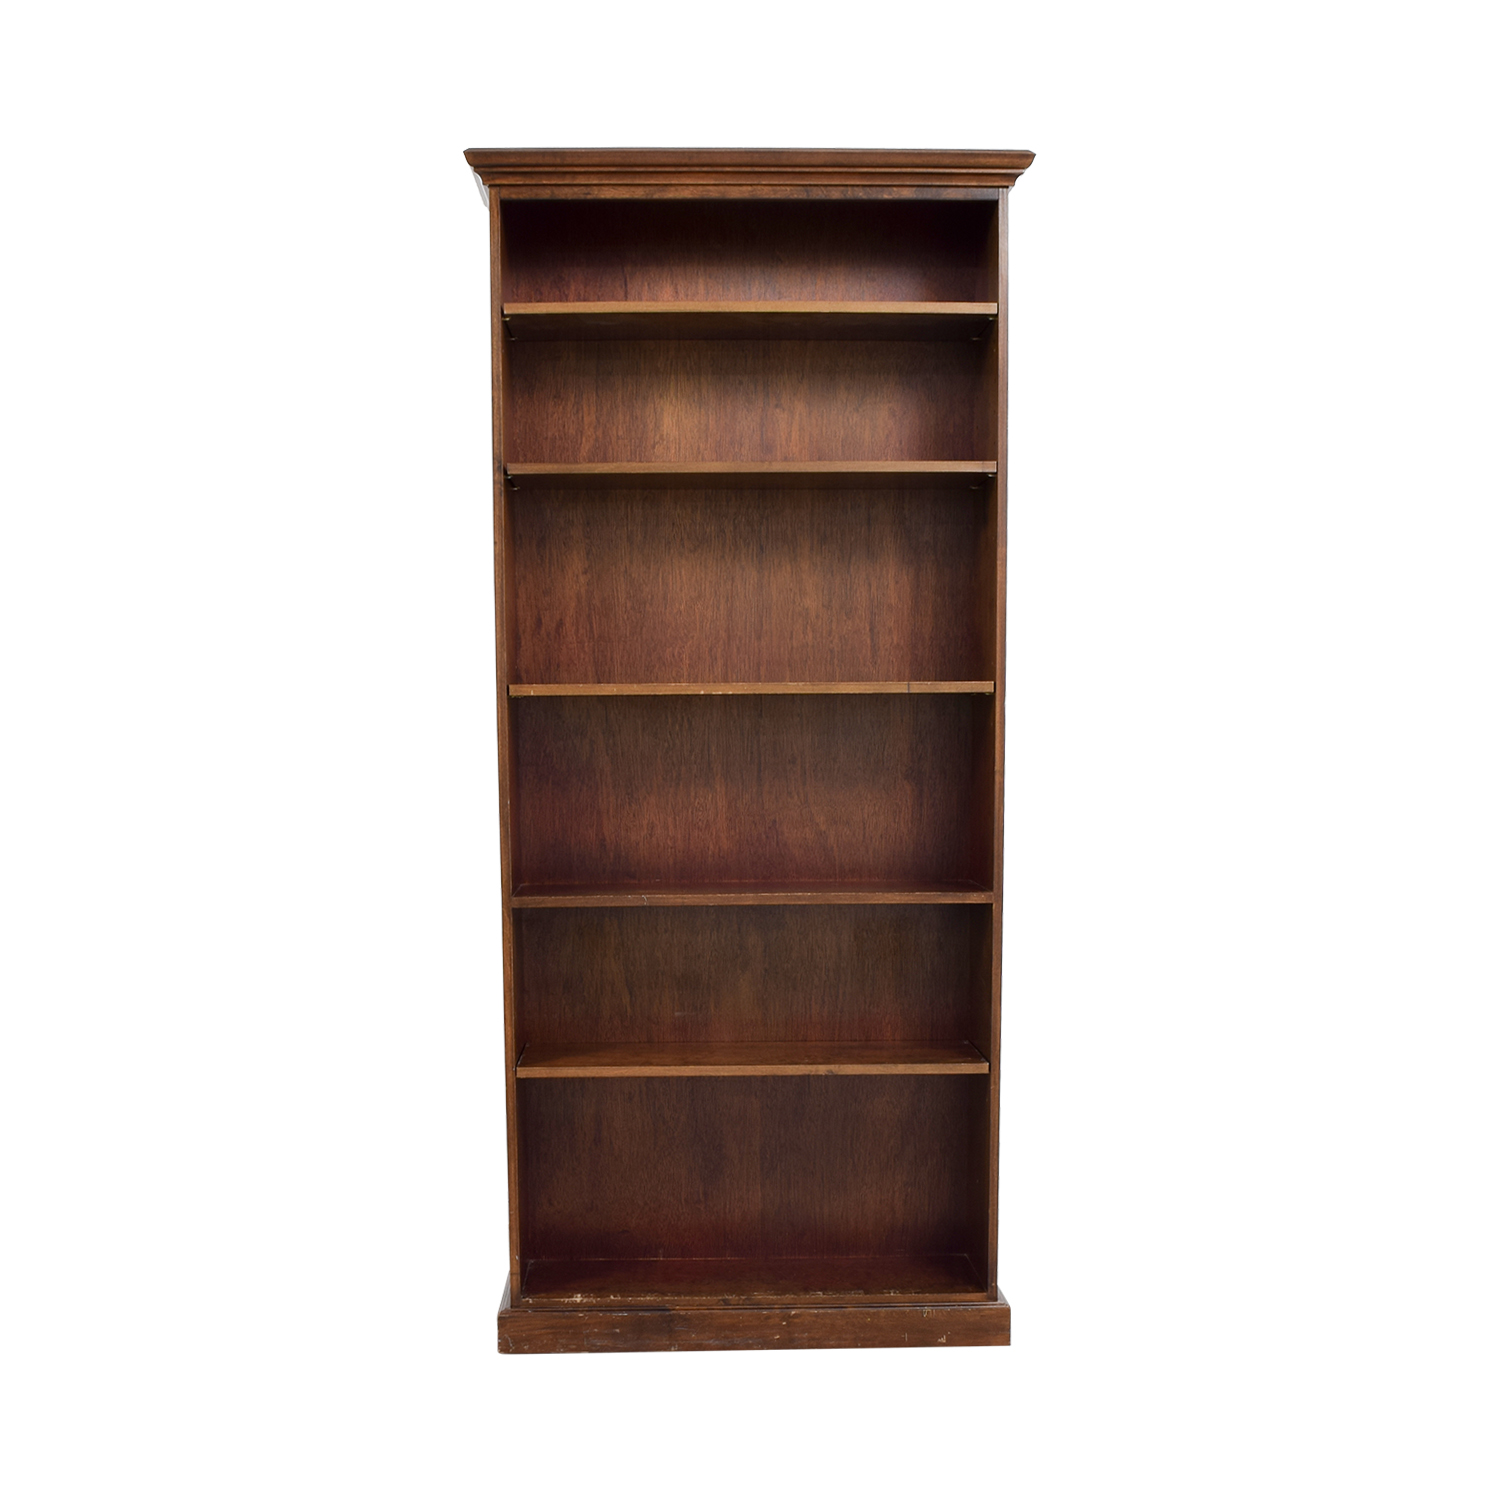 buy Five Shelf Wood Book Shelf Storage